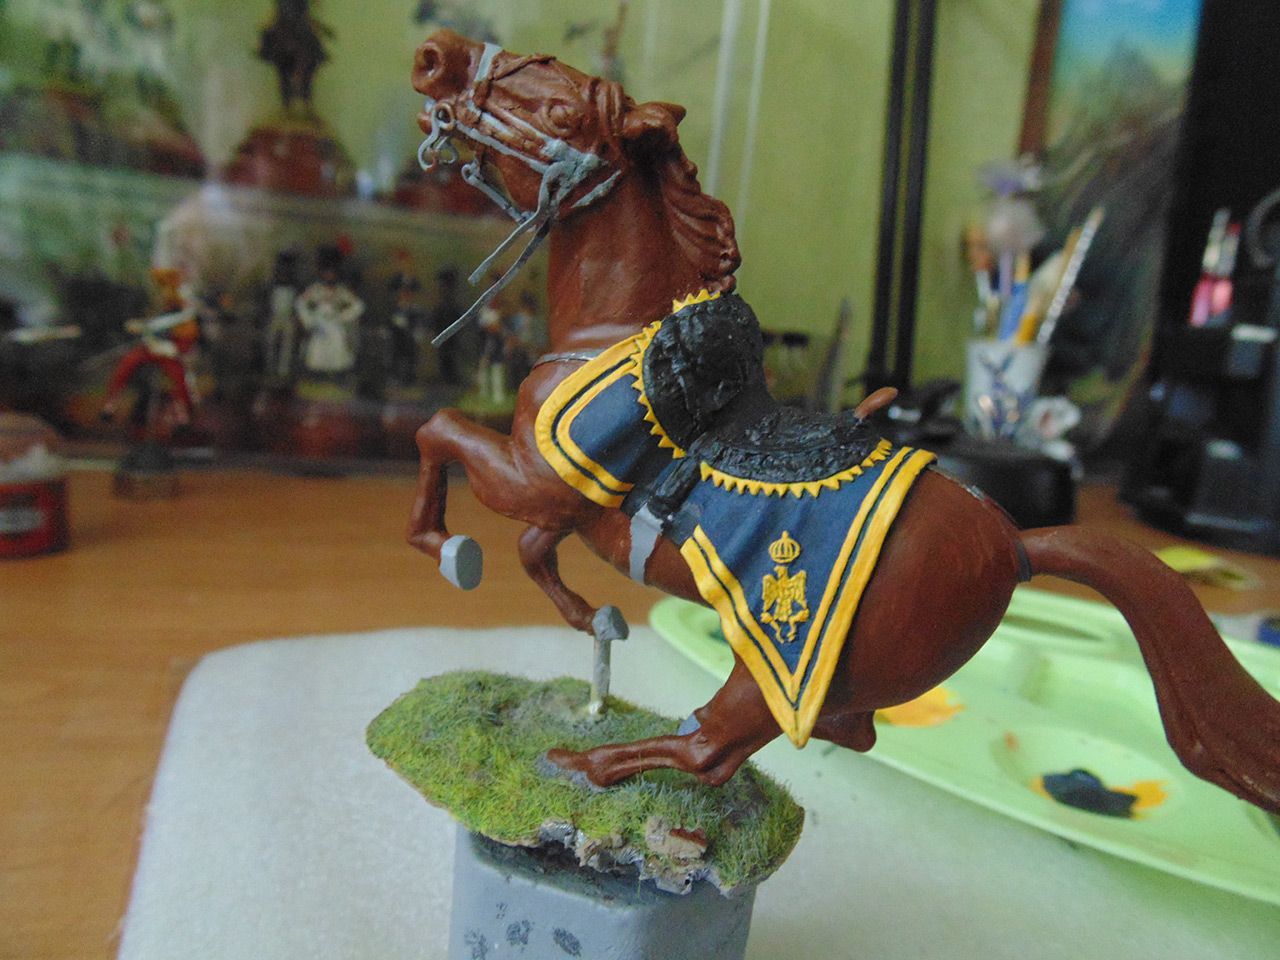 Sculpture: Red lancer, photo #7